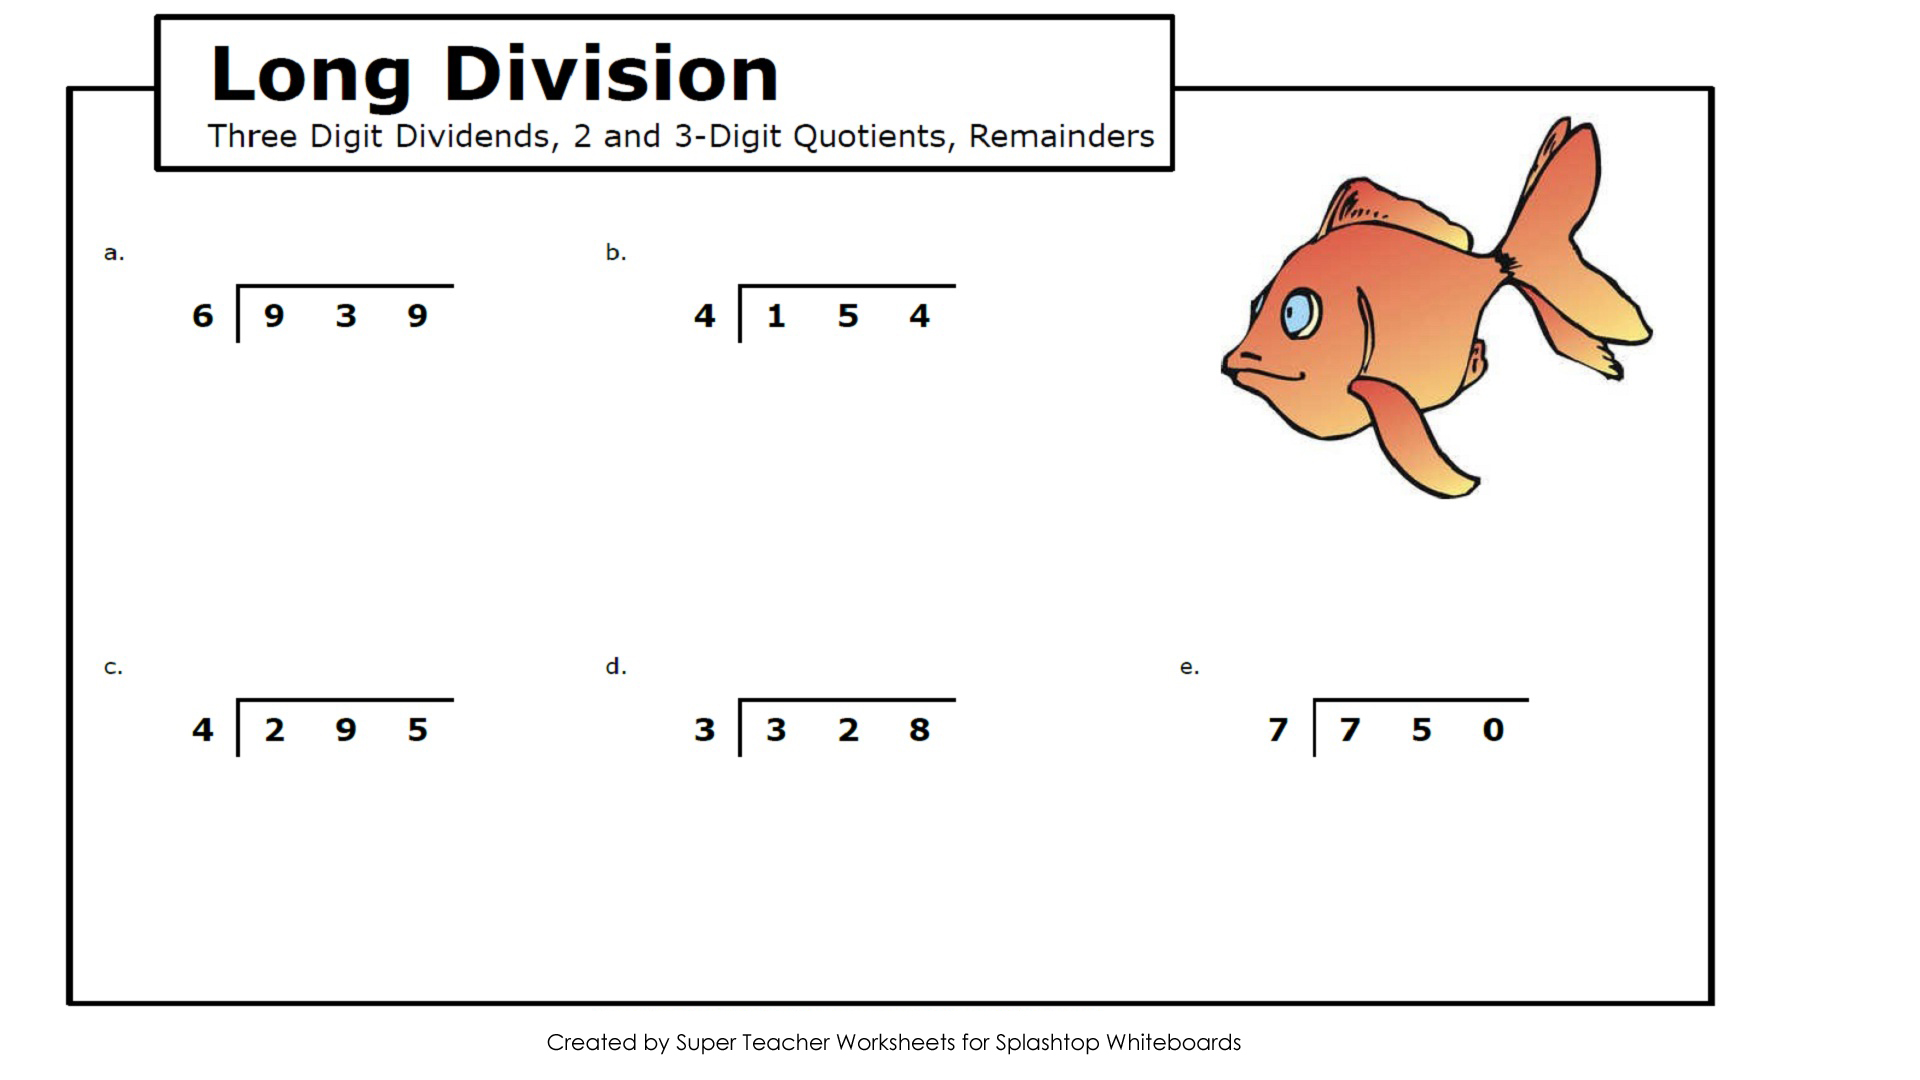 worksheet Division Without Remainders Worksheet splashtop whiteboard background graphics long division 3 digit dividends